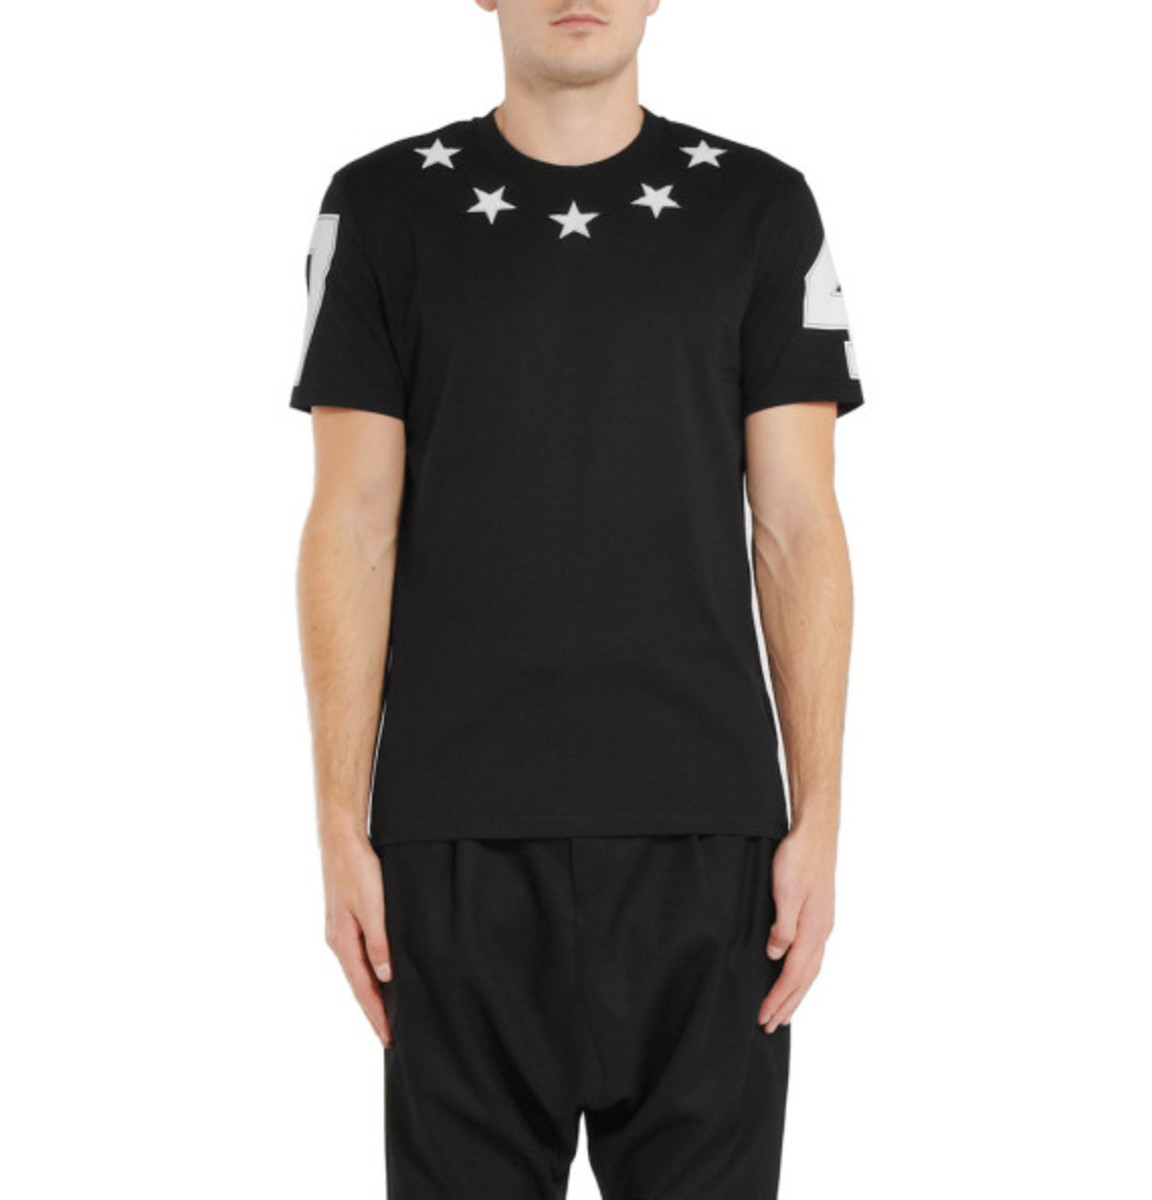 givenchy-cuban-fit-embroidered-star-tee-02